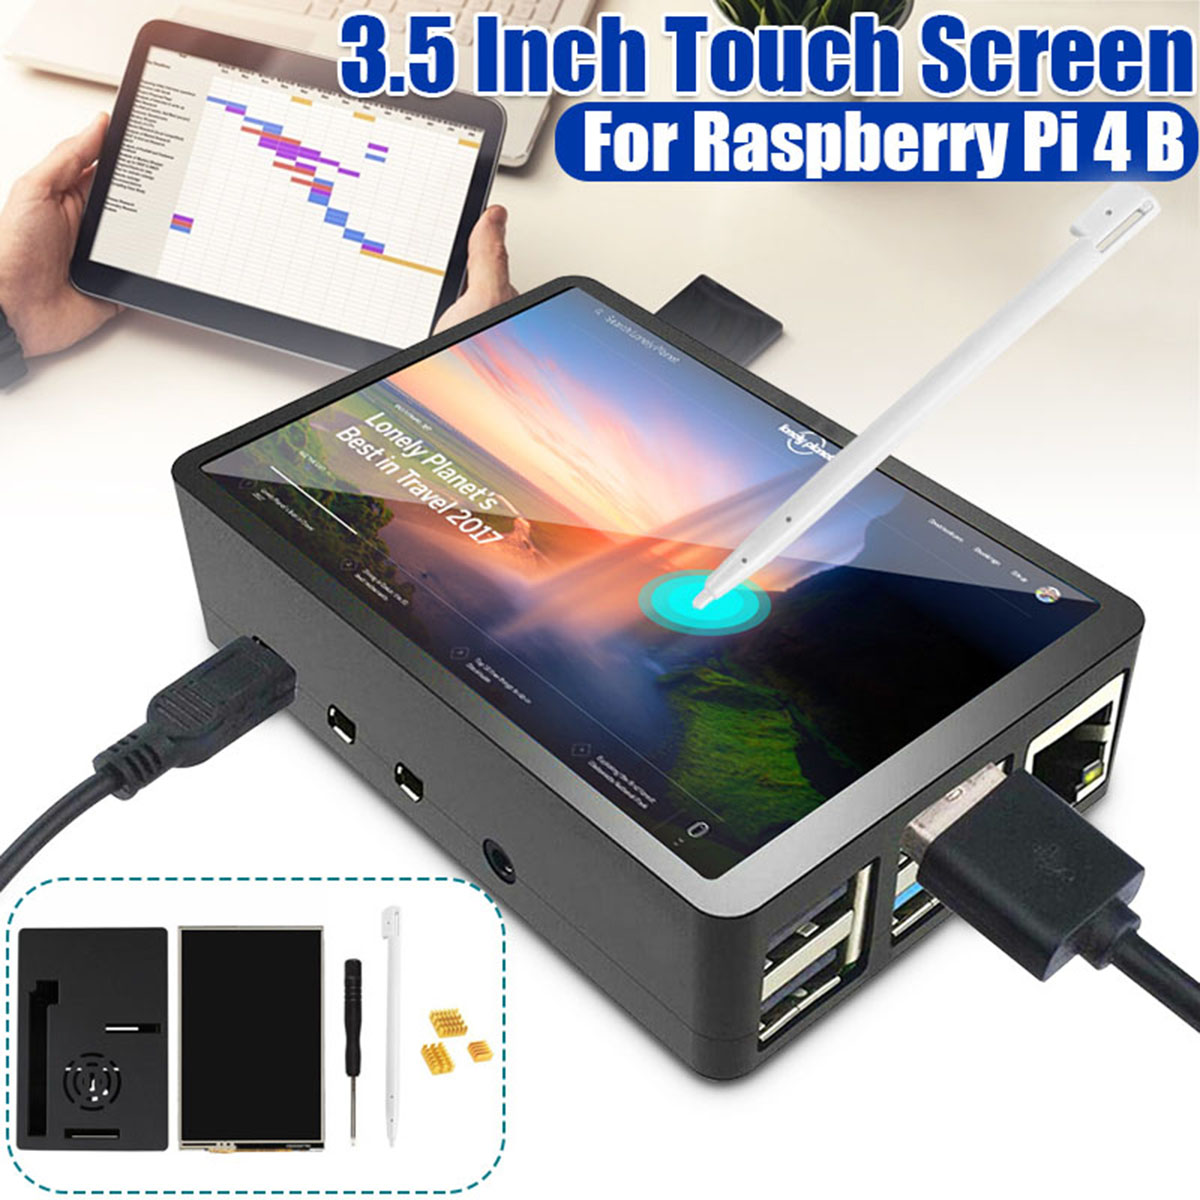 Lcd-Touchscreen Screwdriver Lcd-Display Raspberry Pi TFT for 4-B Hdmi-Input-Monitor Abs-Case